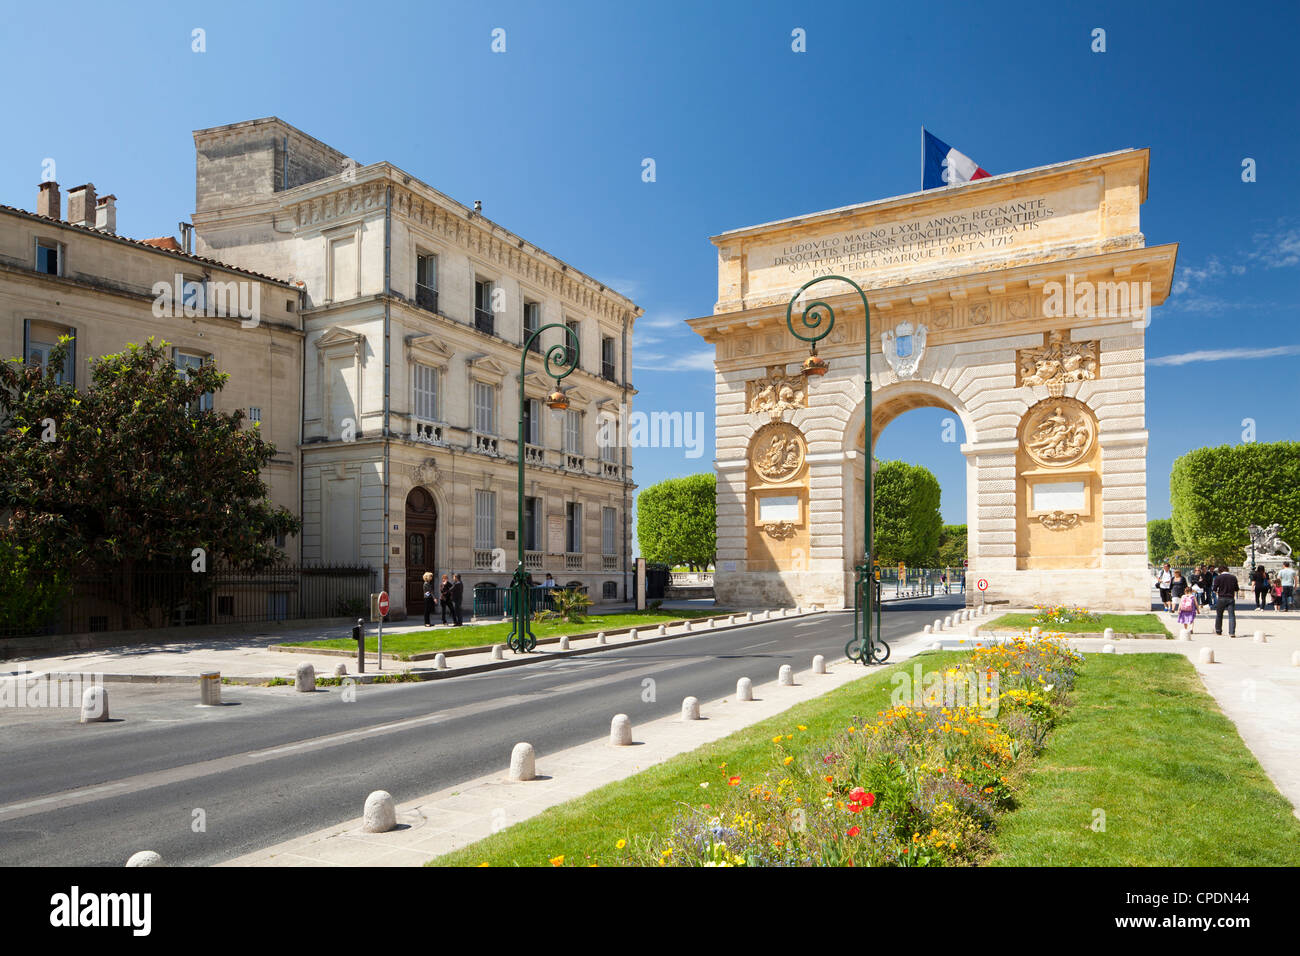 The Arc de Triomphe, Rue Foch, Montpellier, Languedoc-Roussillon, France, Europe Stock Photo